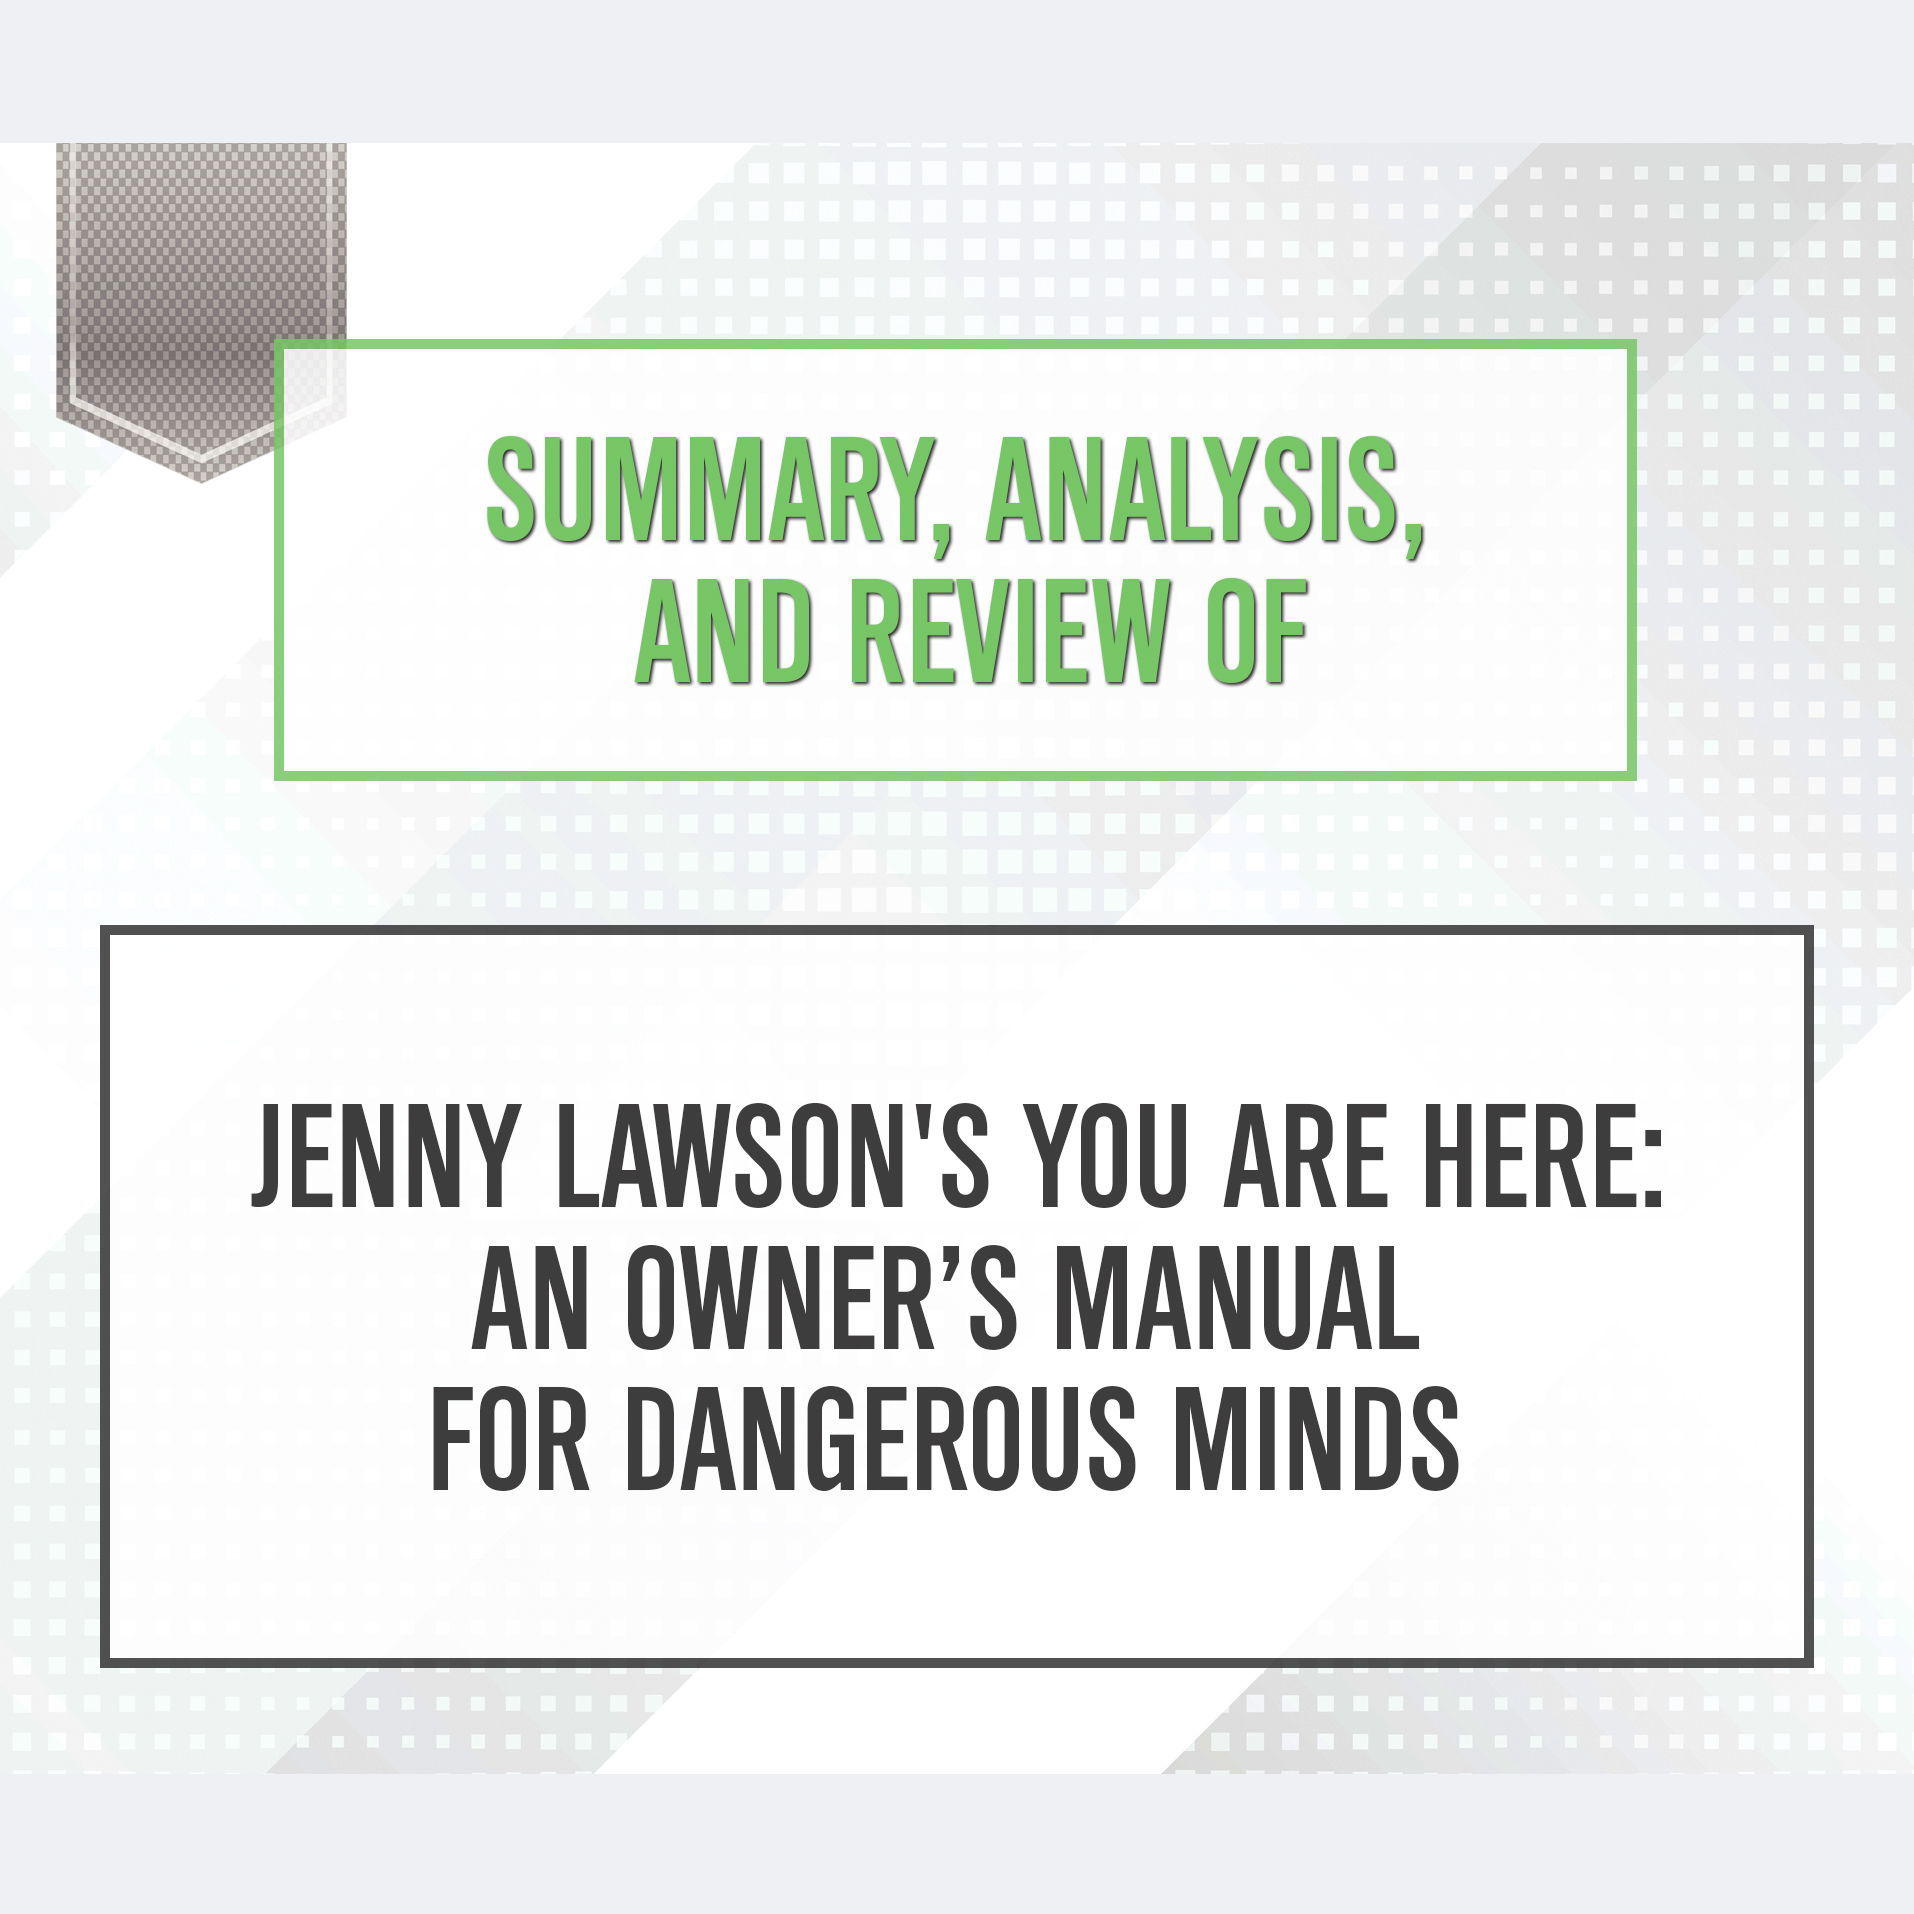 summary analysis and review of jenny lawson s you are here an rh audiobookstore com owners manual harmar al500 owners manual hem h160m